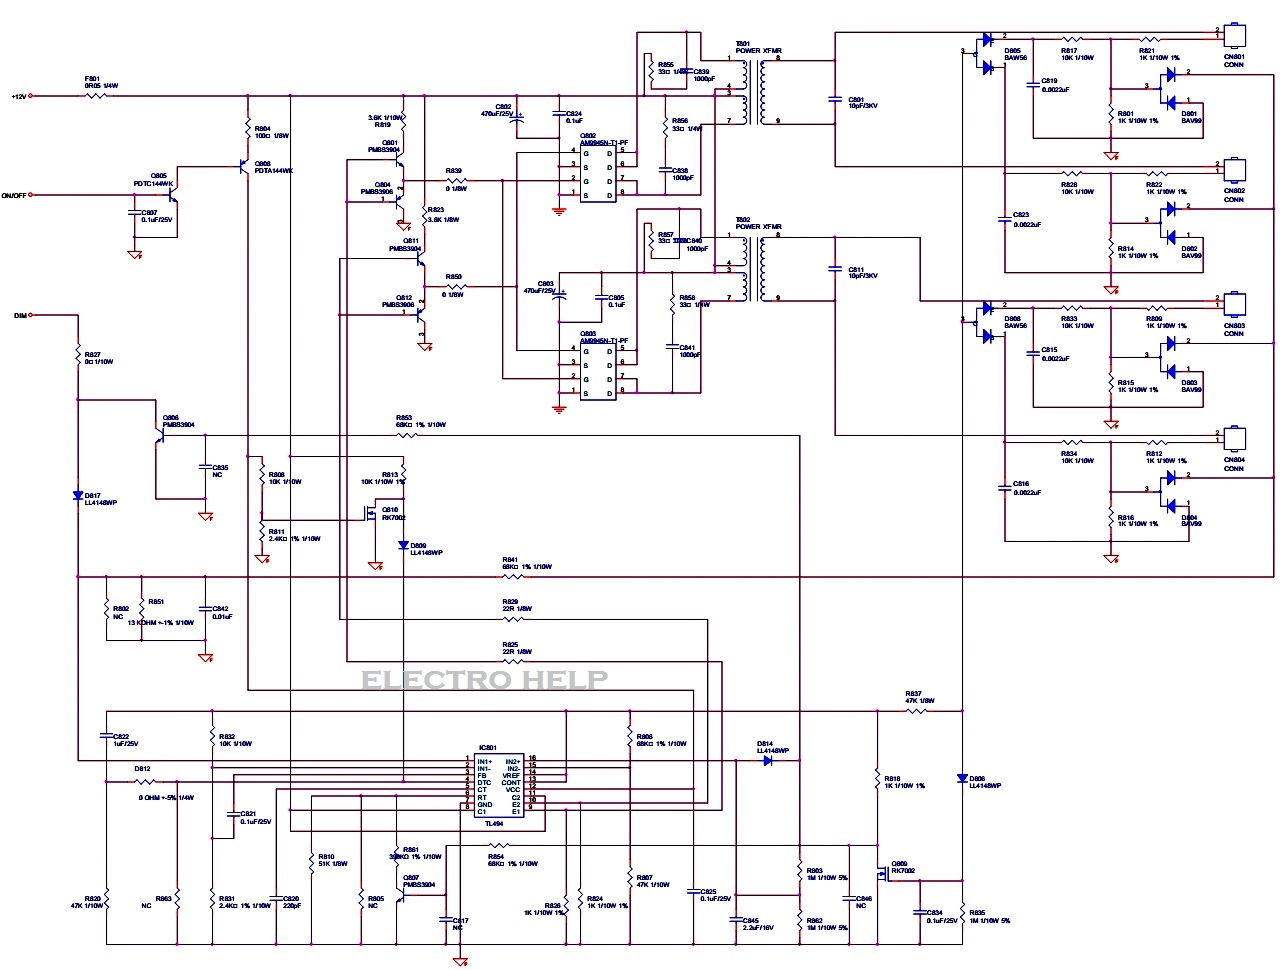 ACER X193W TFT Color LCD MONITOR  Power and Backlight Inverter Schematic | Electro help